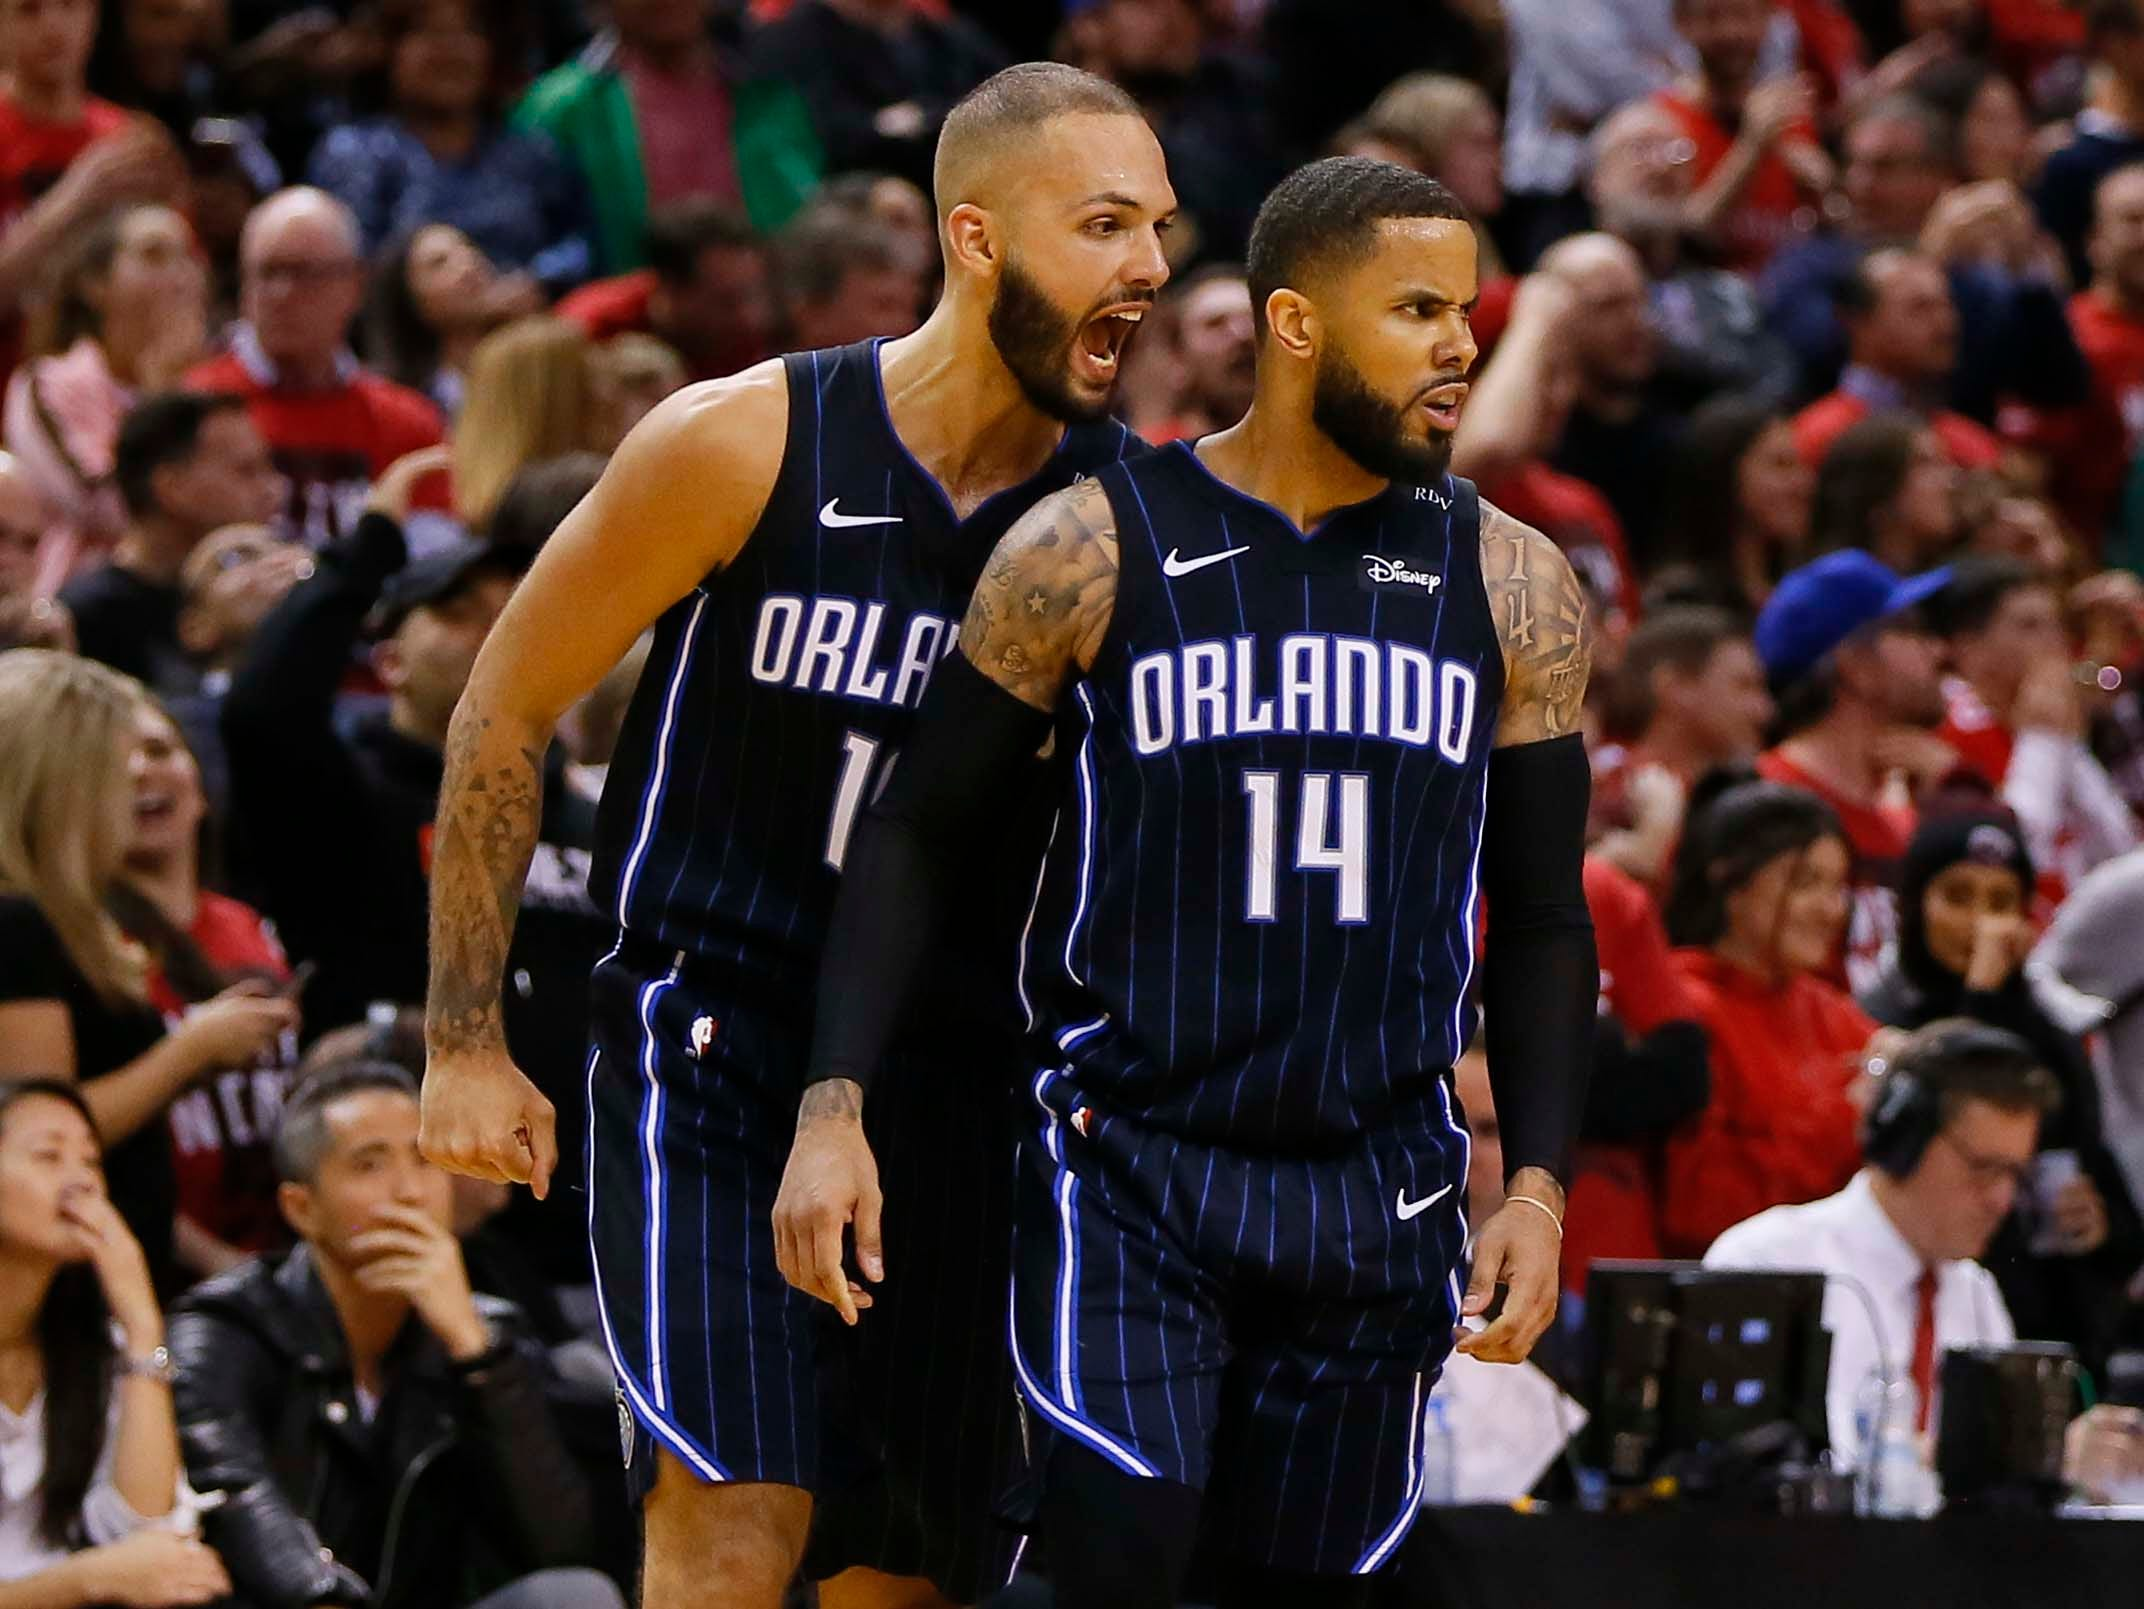 April 13: Evan Fournier reacts after Magic guard D.J. Augustin hit the game-winning 3-pointer against the Raptors in Game 1.